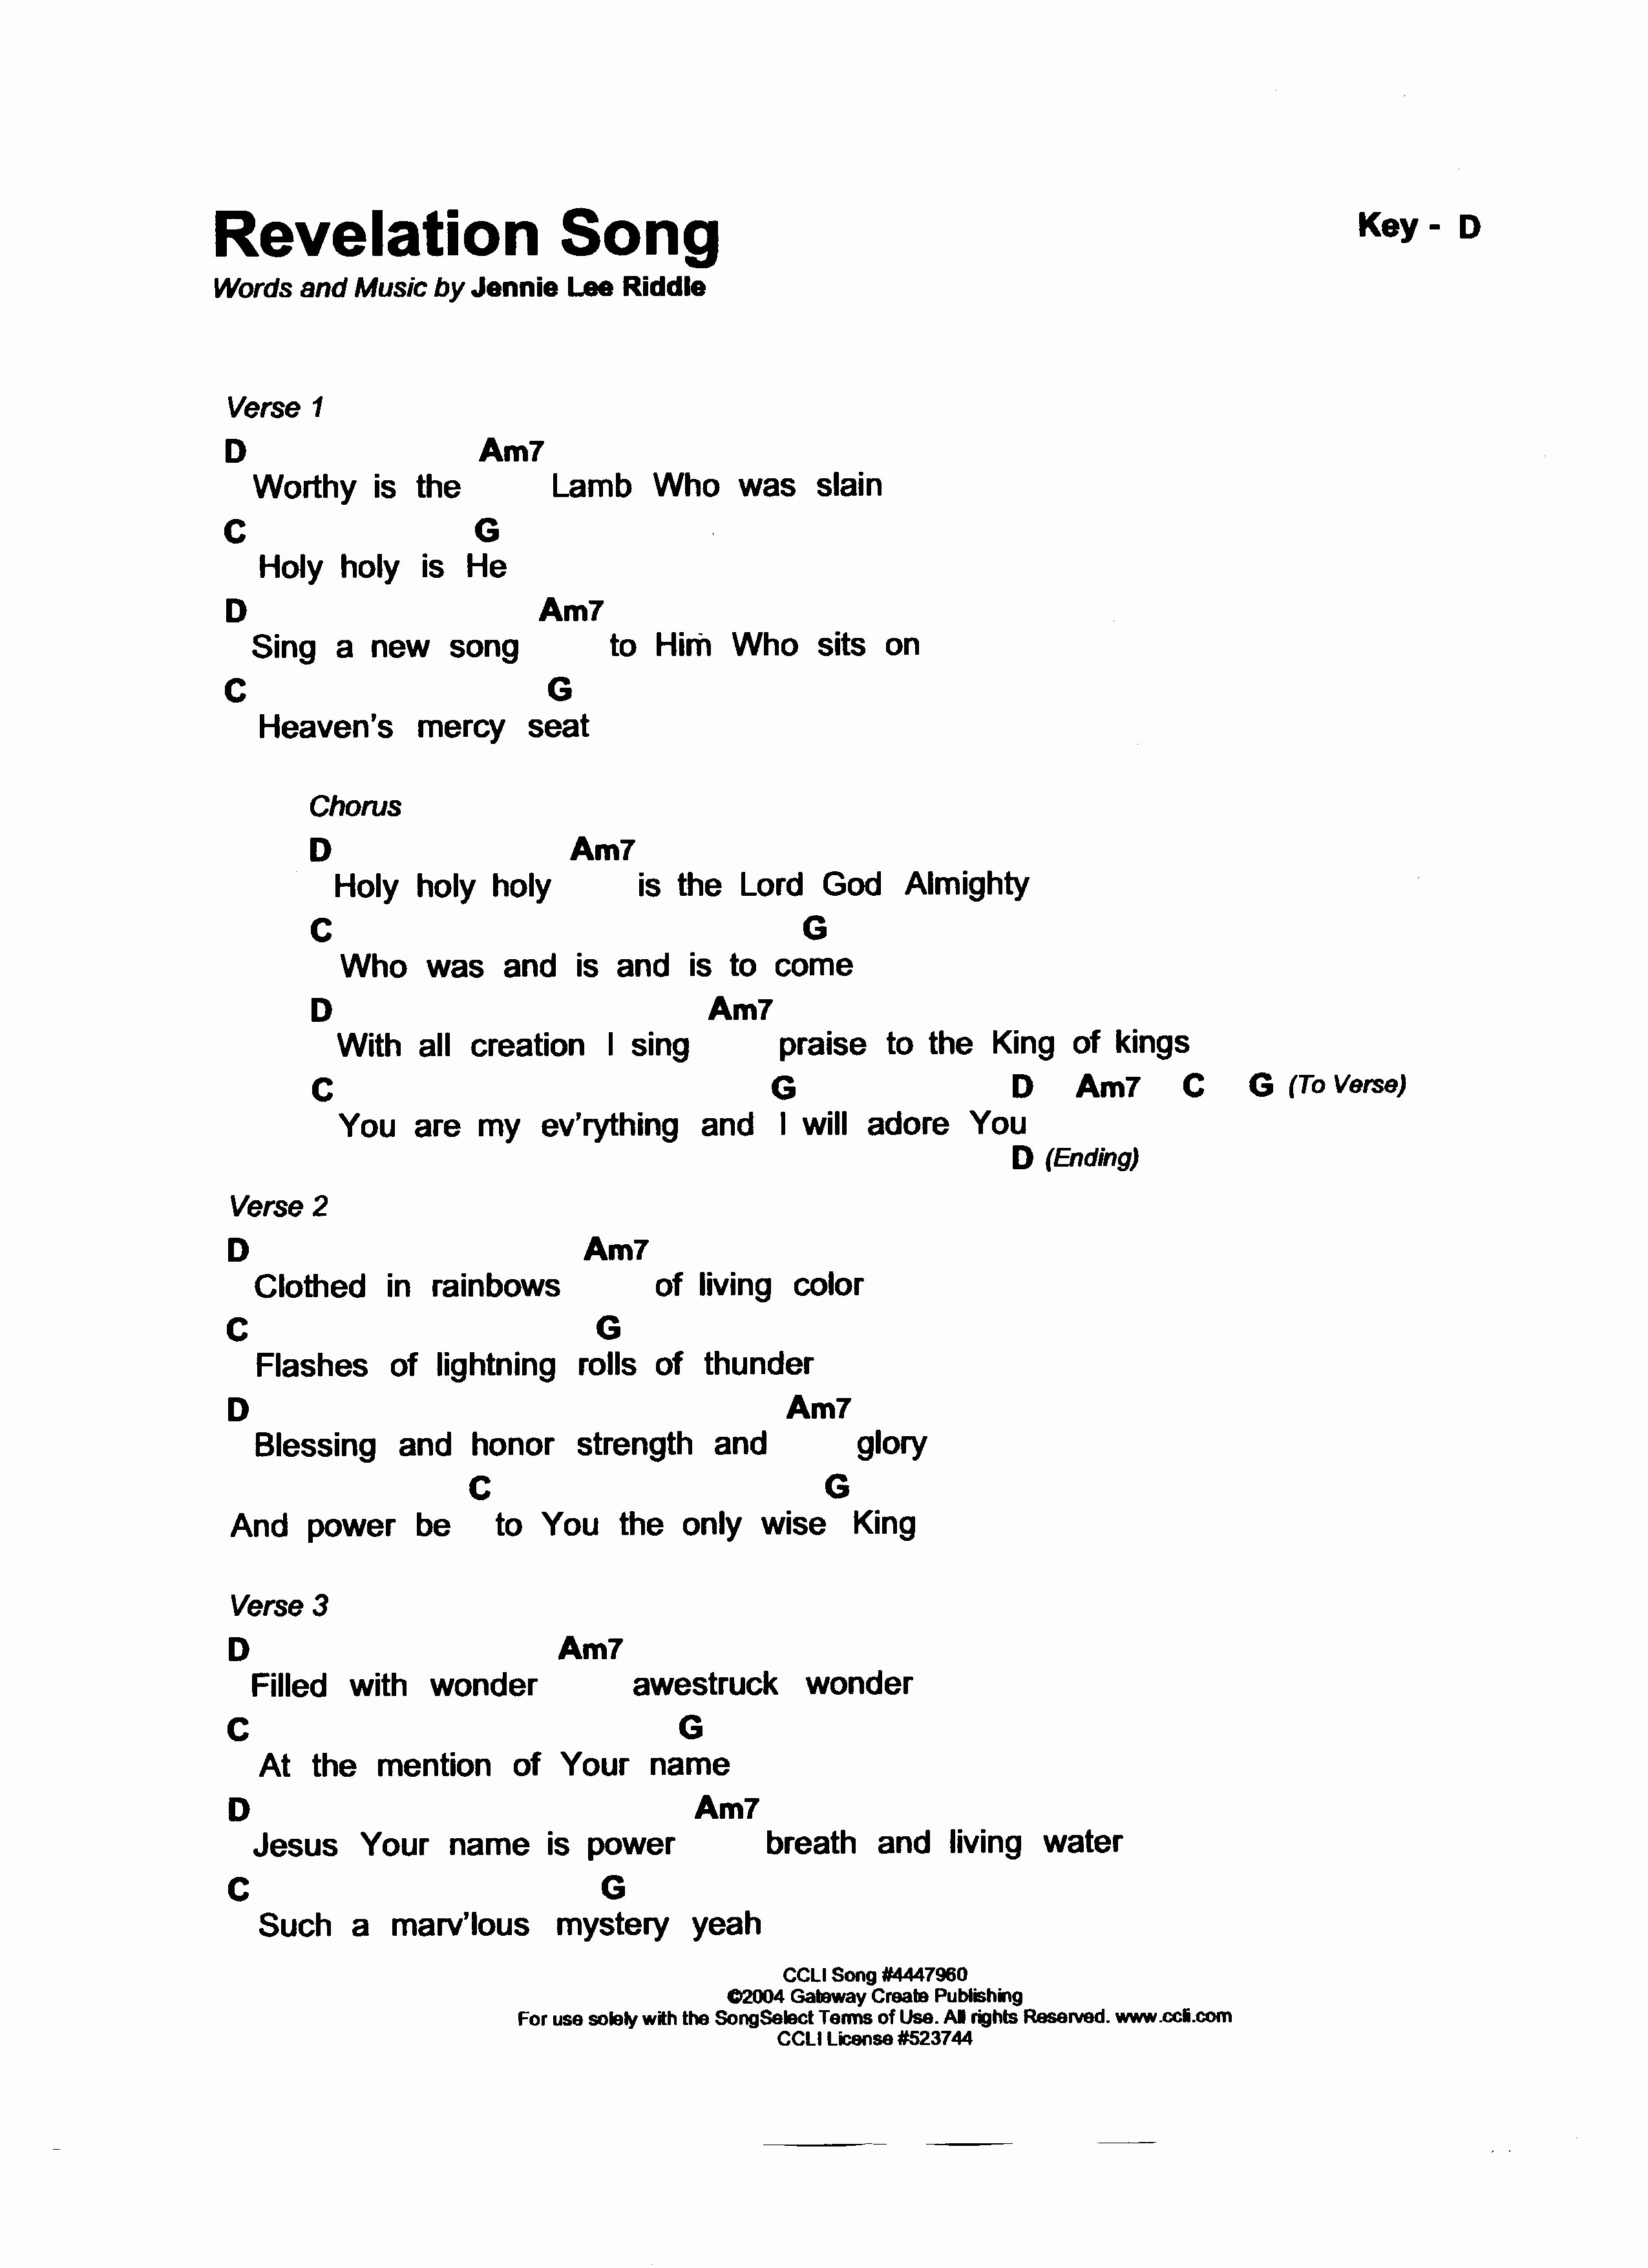 Revelation Song Chords Convert Guitar Chords To Piano Accomplice Music